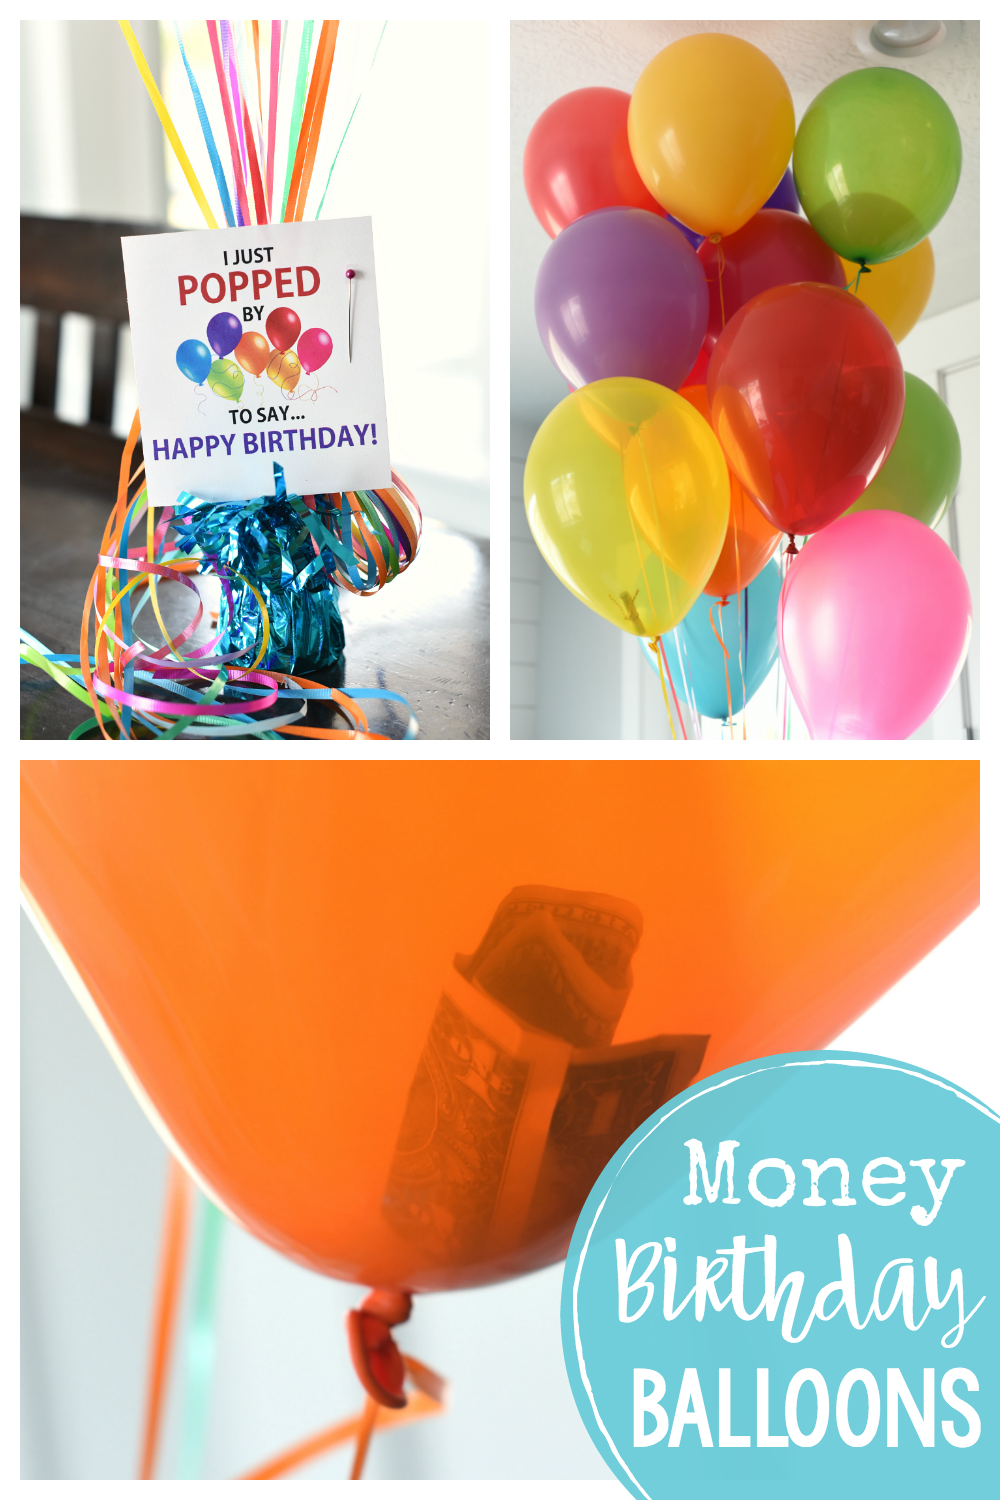 Money Gift Ideas: Birthday Balloons – Fun-Squared